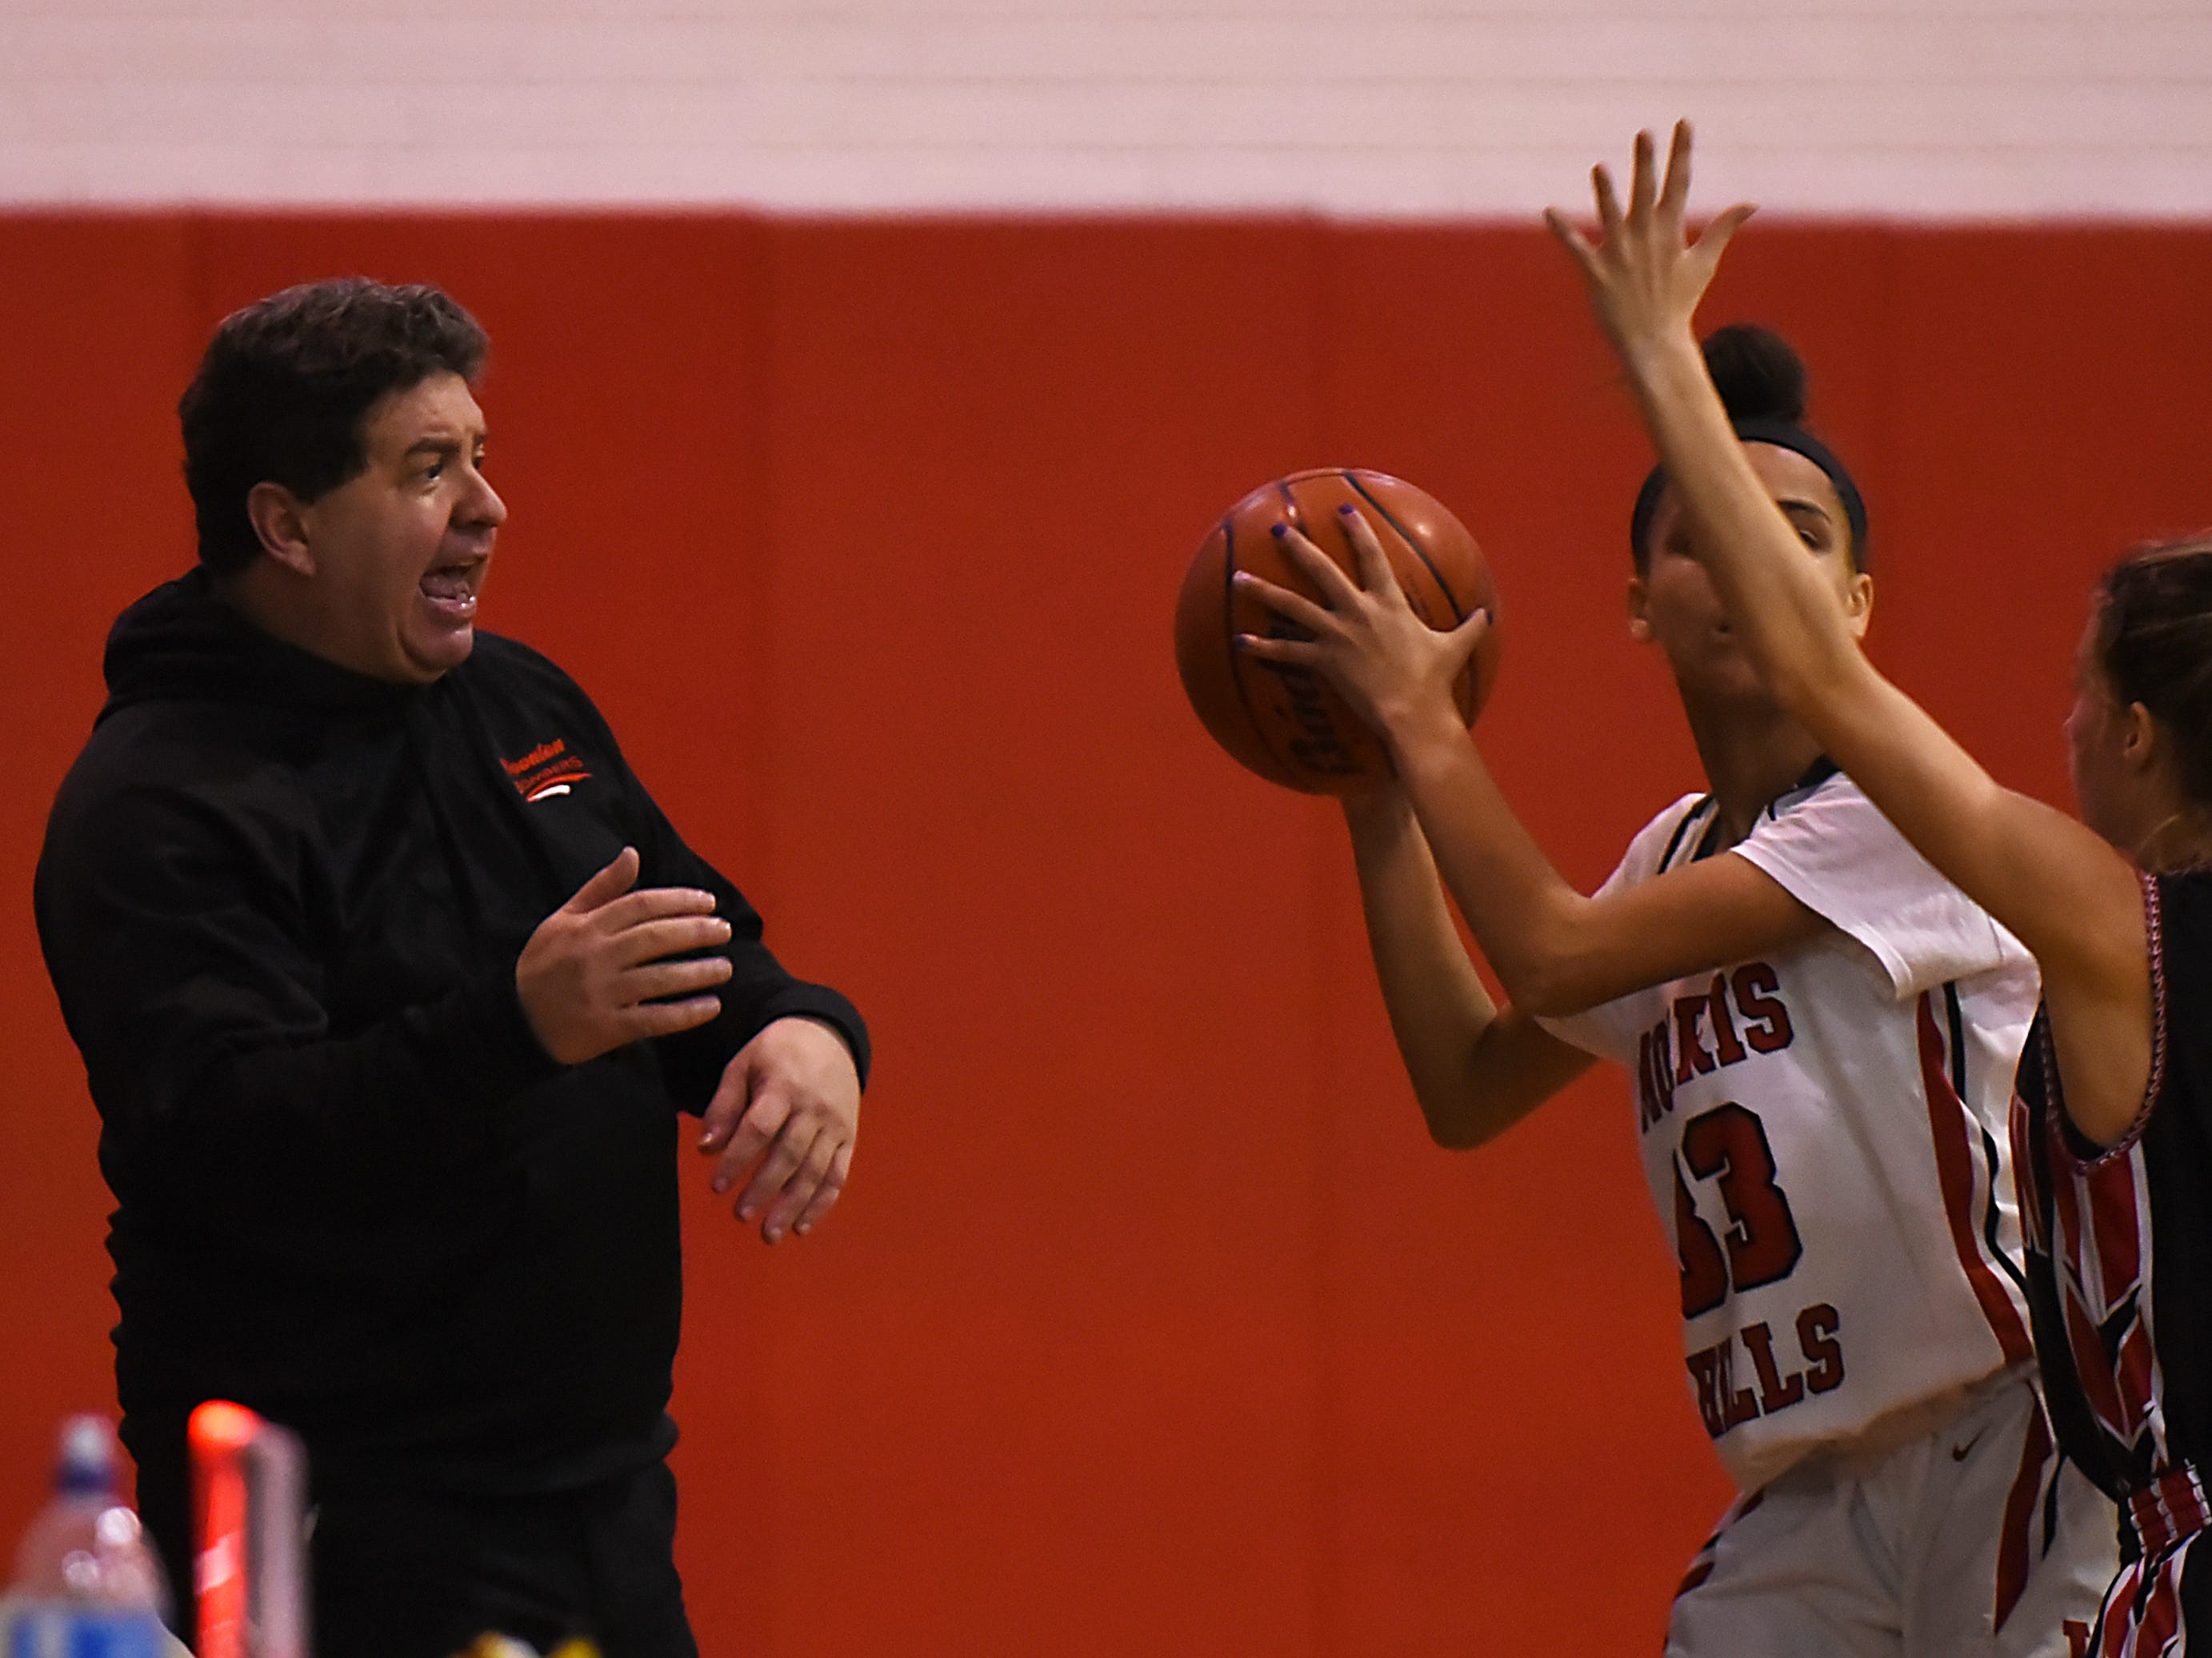 Boonton coach Mike Carlin gives instructions as Morris Hills' Mackenzie Creistonand tries to pass the ball past Boonton senior Nicole Krozser.  Boonton Vs. Morris Hills girls basketball game at the Morris Hills Holiday Tournament in Rockaway on Friday December 28, 2018. (From left)